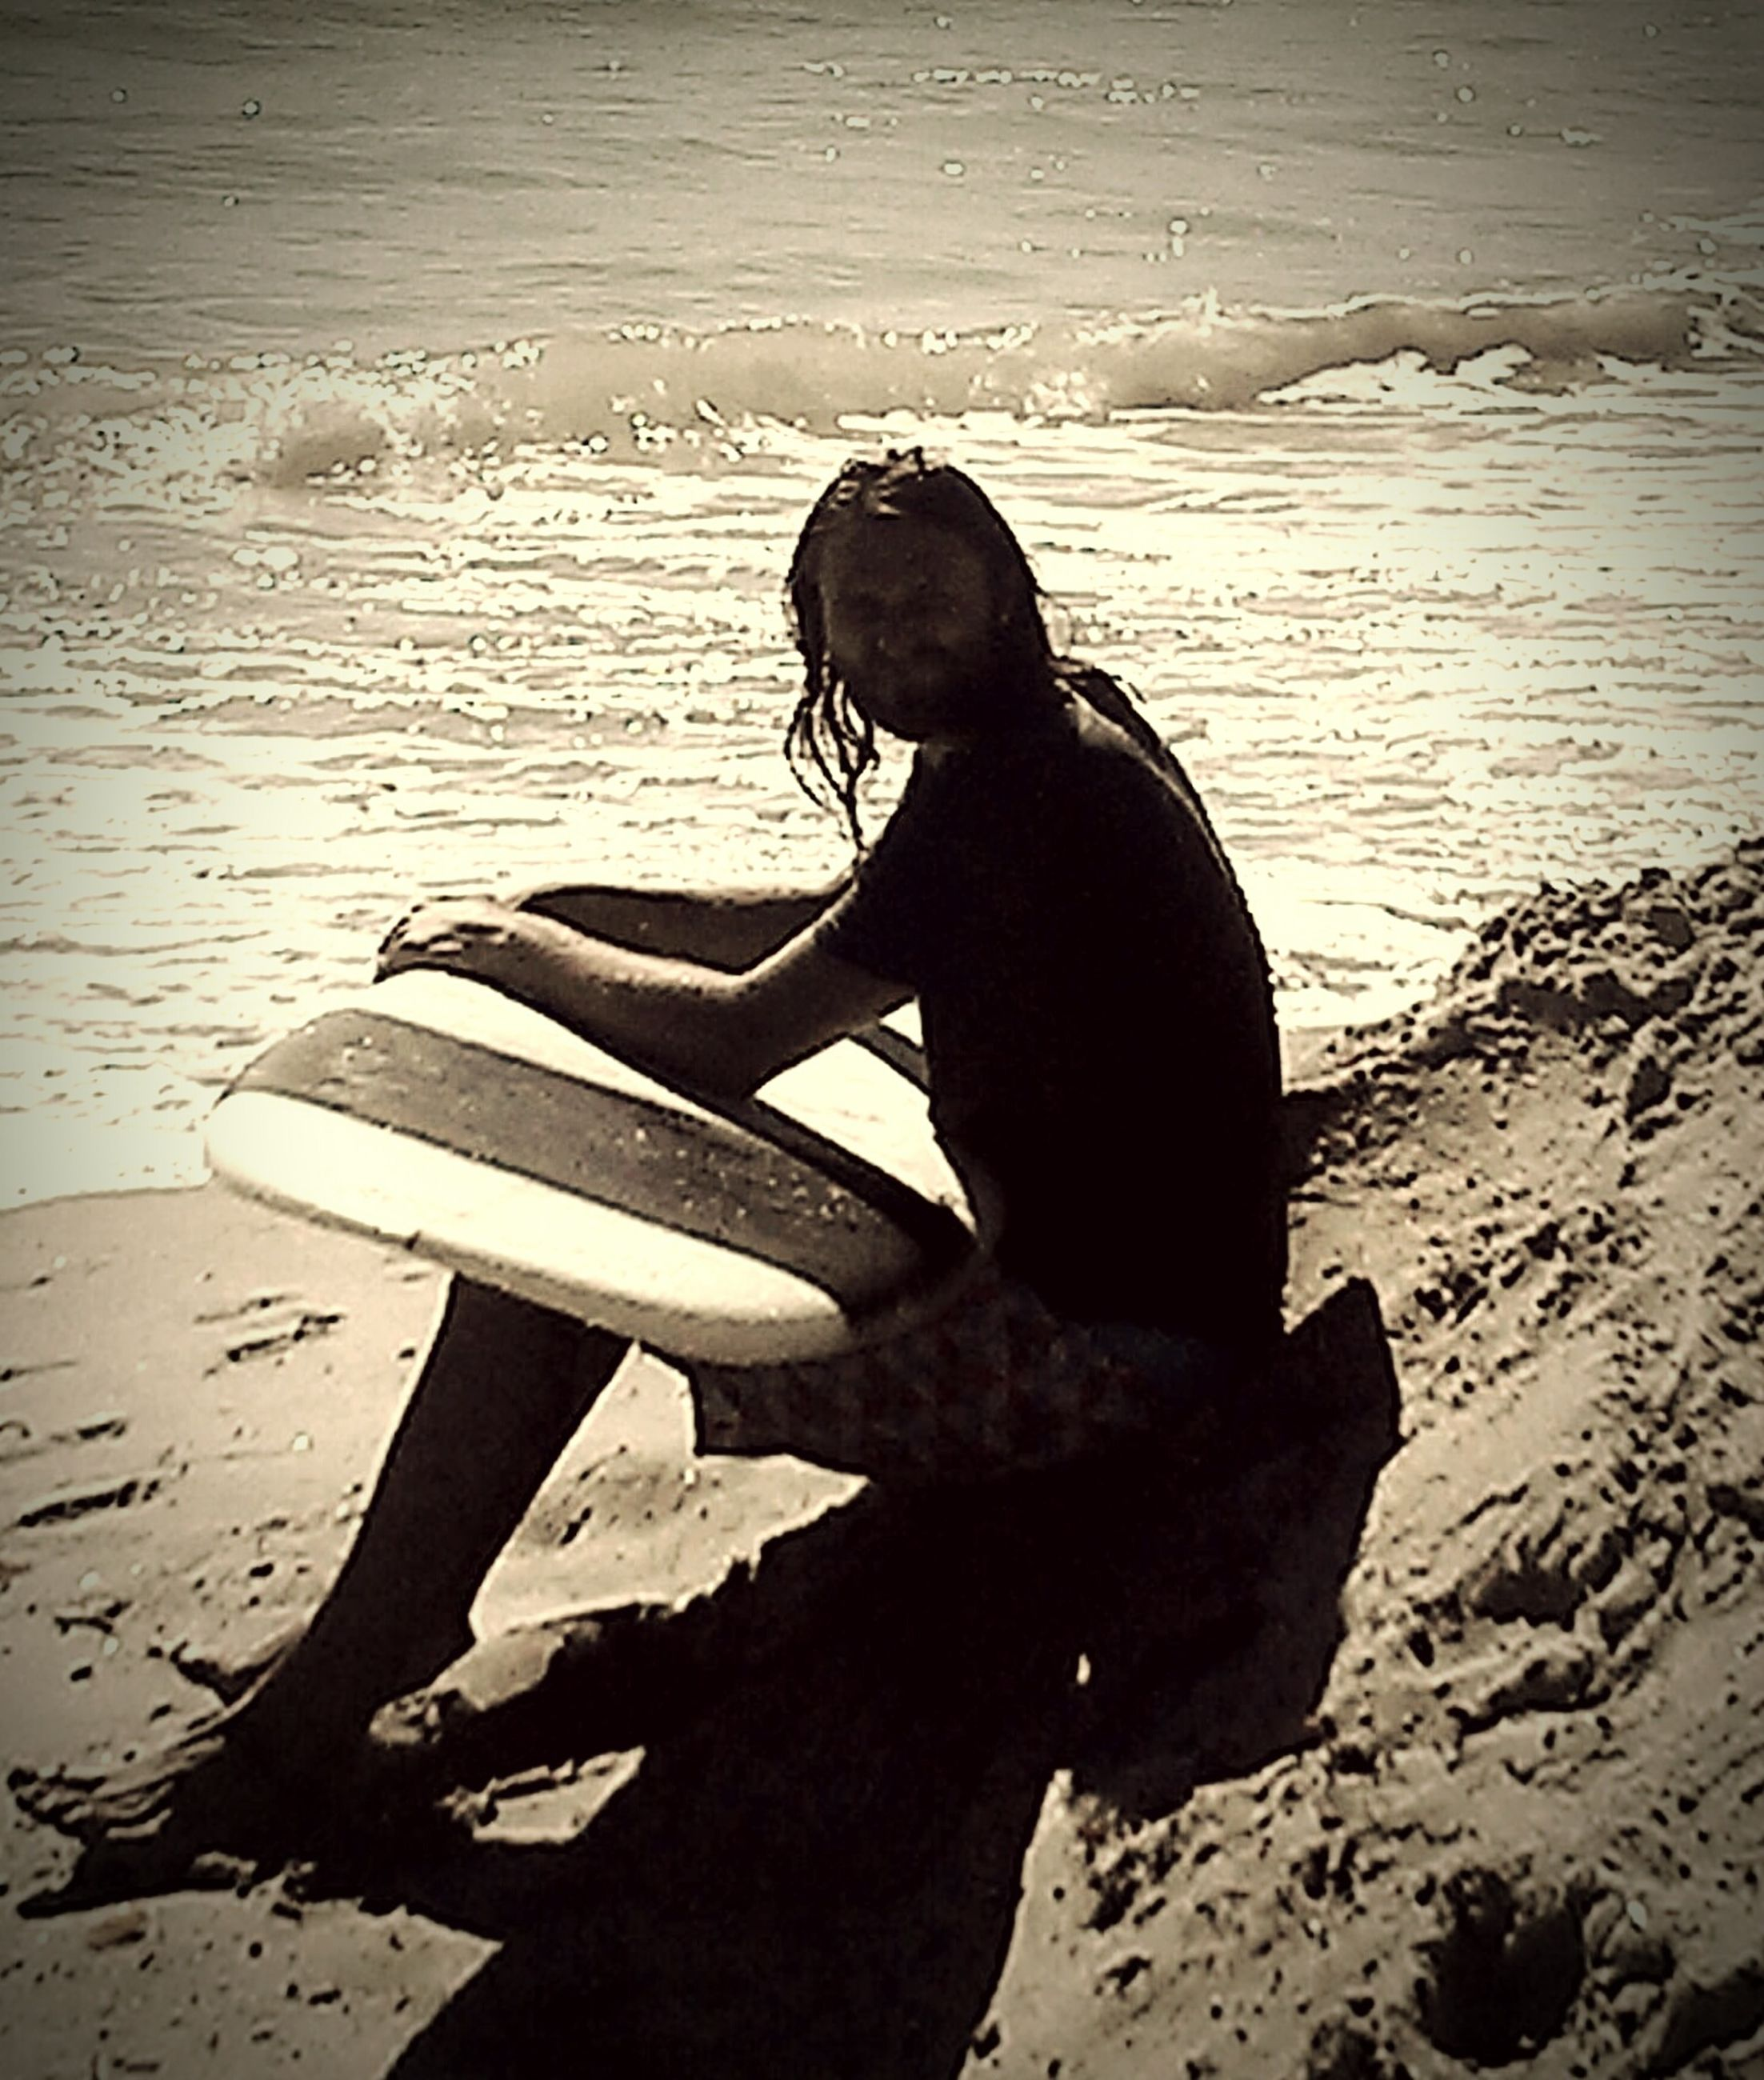 shadow, sunlight, sand, beach, full length, lifestyles, wood - material, day, leisure activity, outdoors, high angle view, shore, standing, sitting, side view, rear view, nature, water